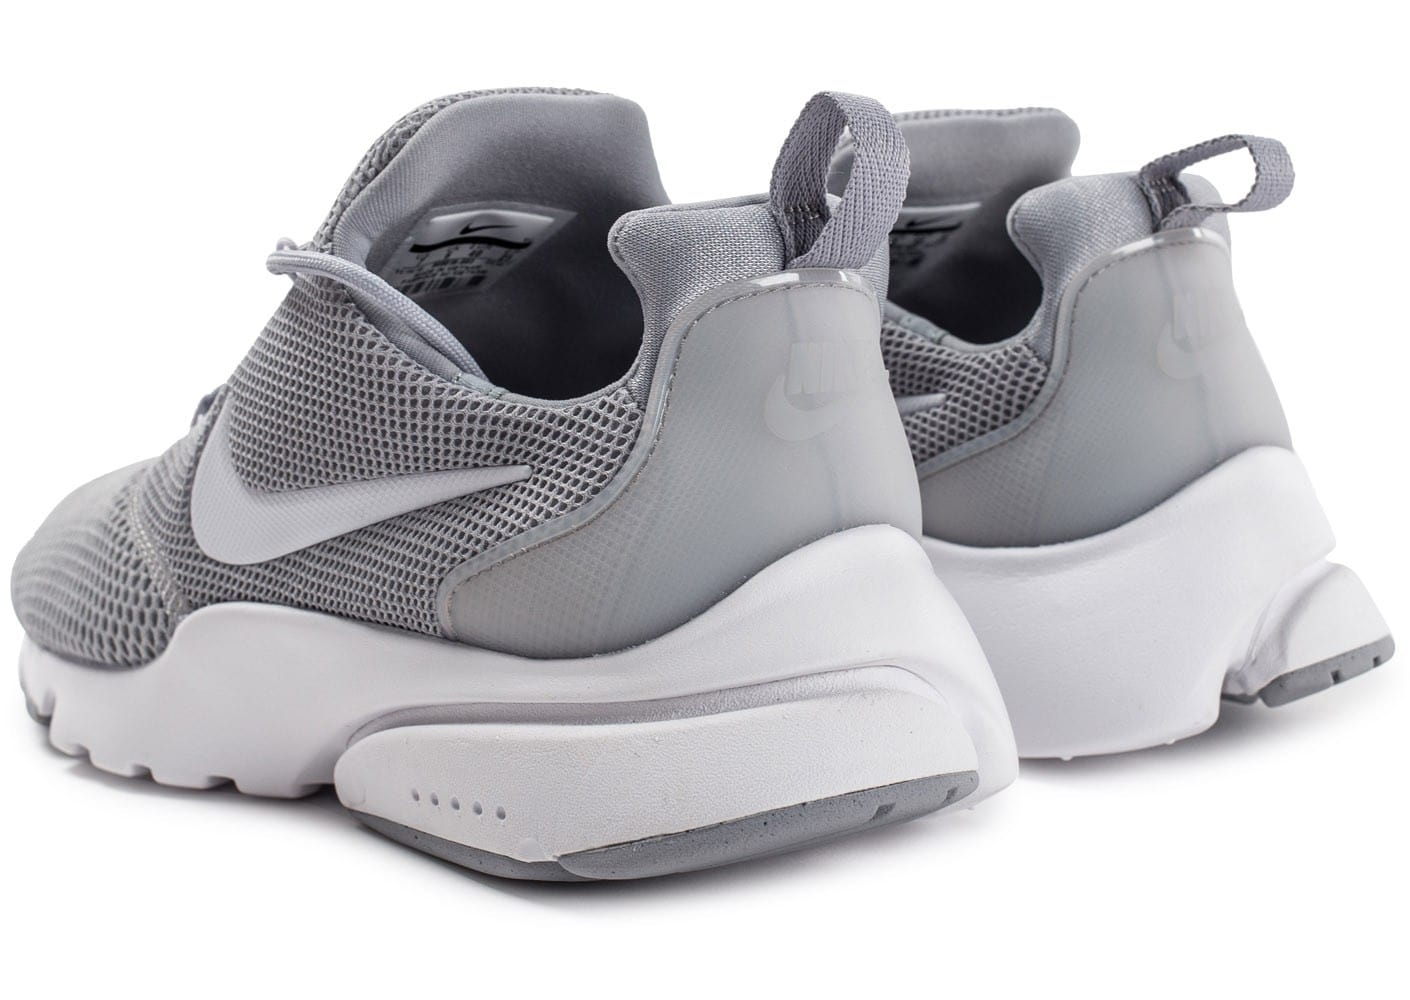 Nike Presto Fly grise Chaussures Baskets homme Chausport